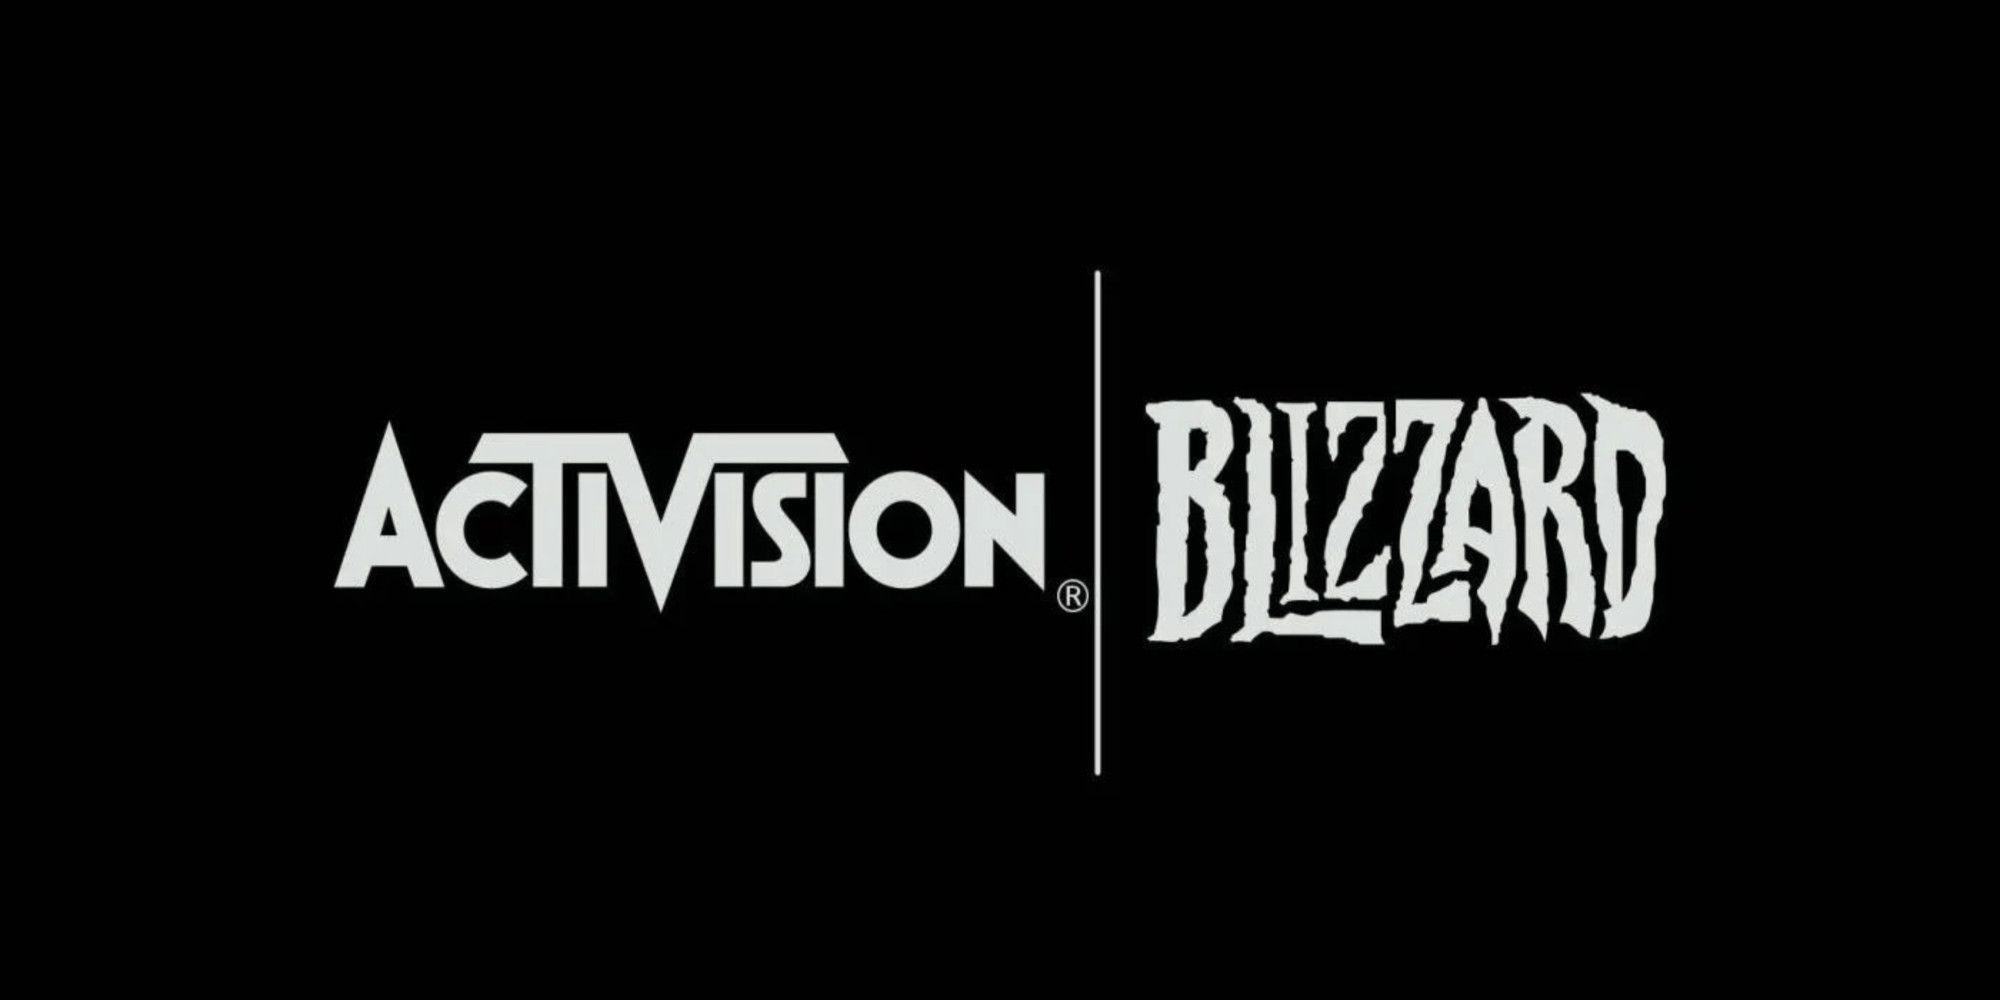 """Blizzard President Calls Toxic Workplace Allegations """"Extremely Troubling"""""""